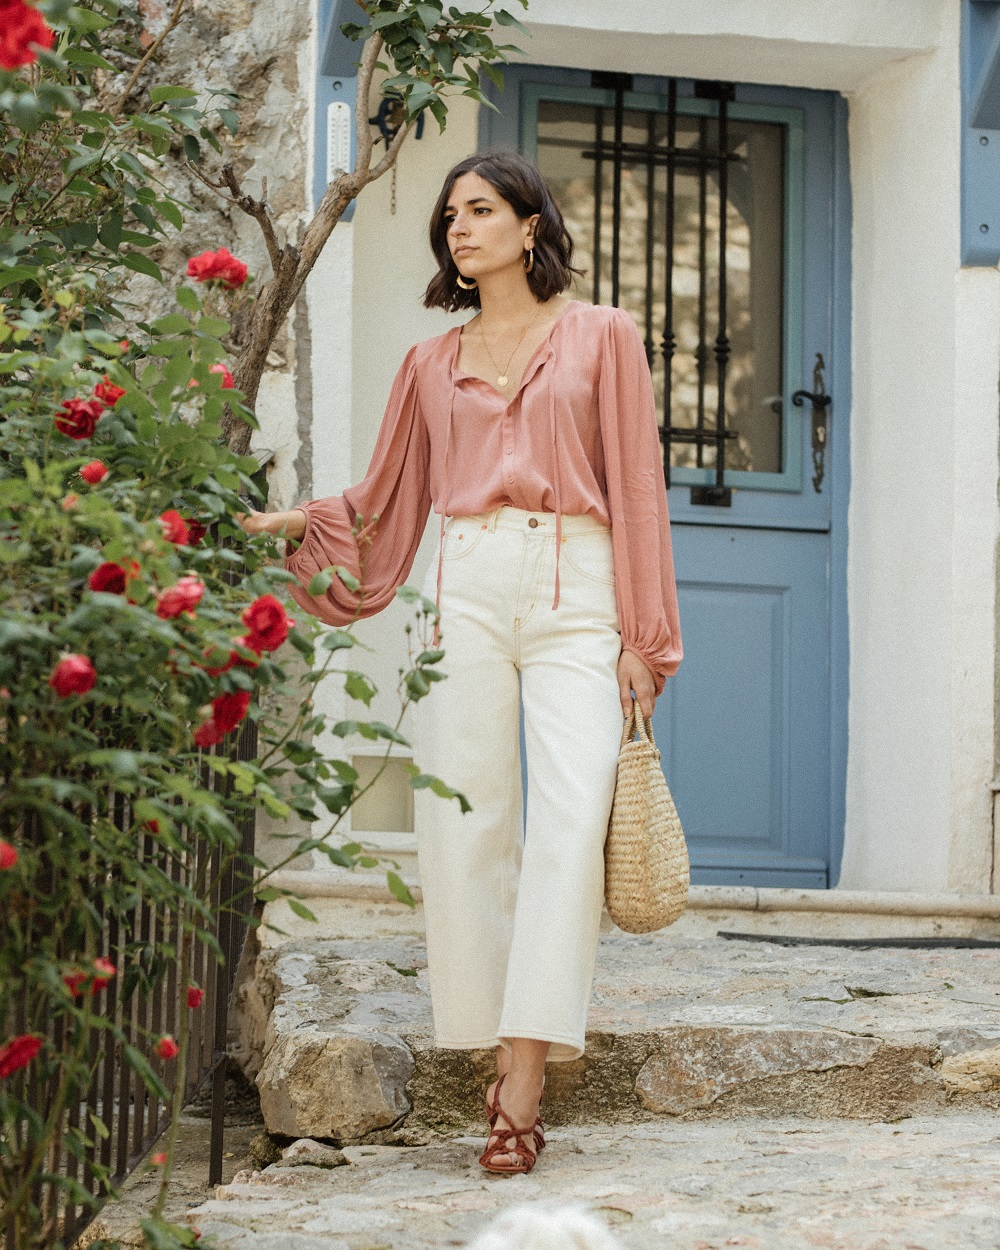 A flowy pink blouse and a pair of white jeans